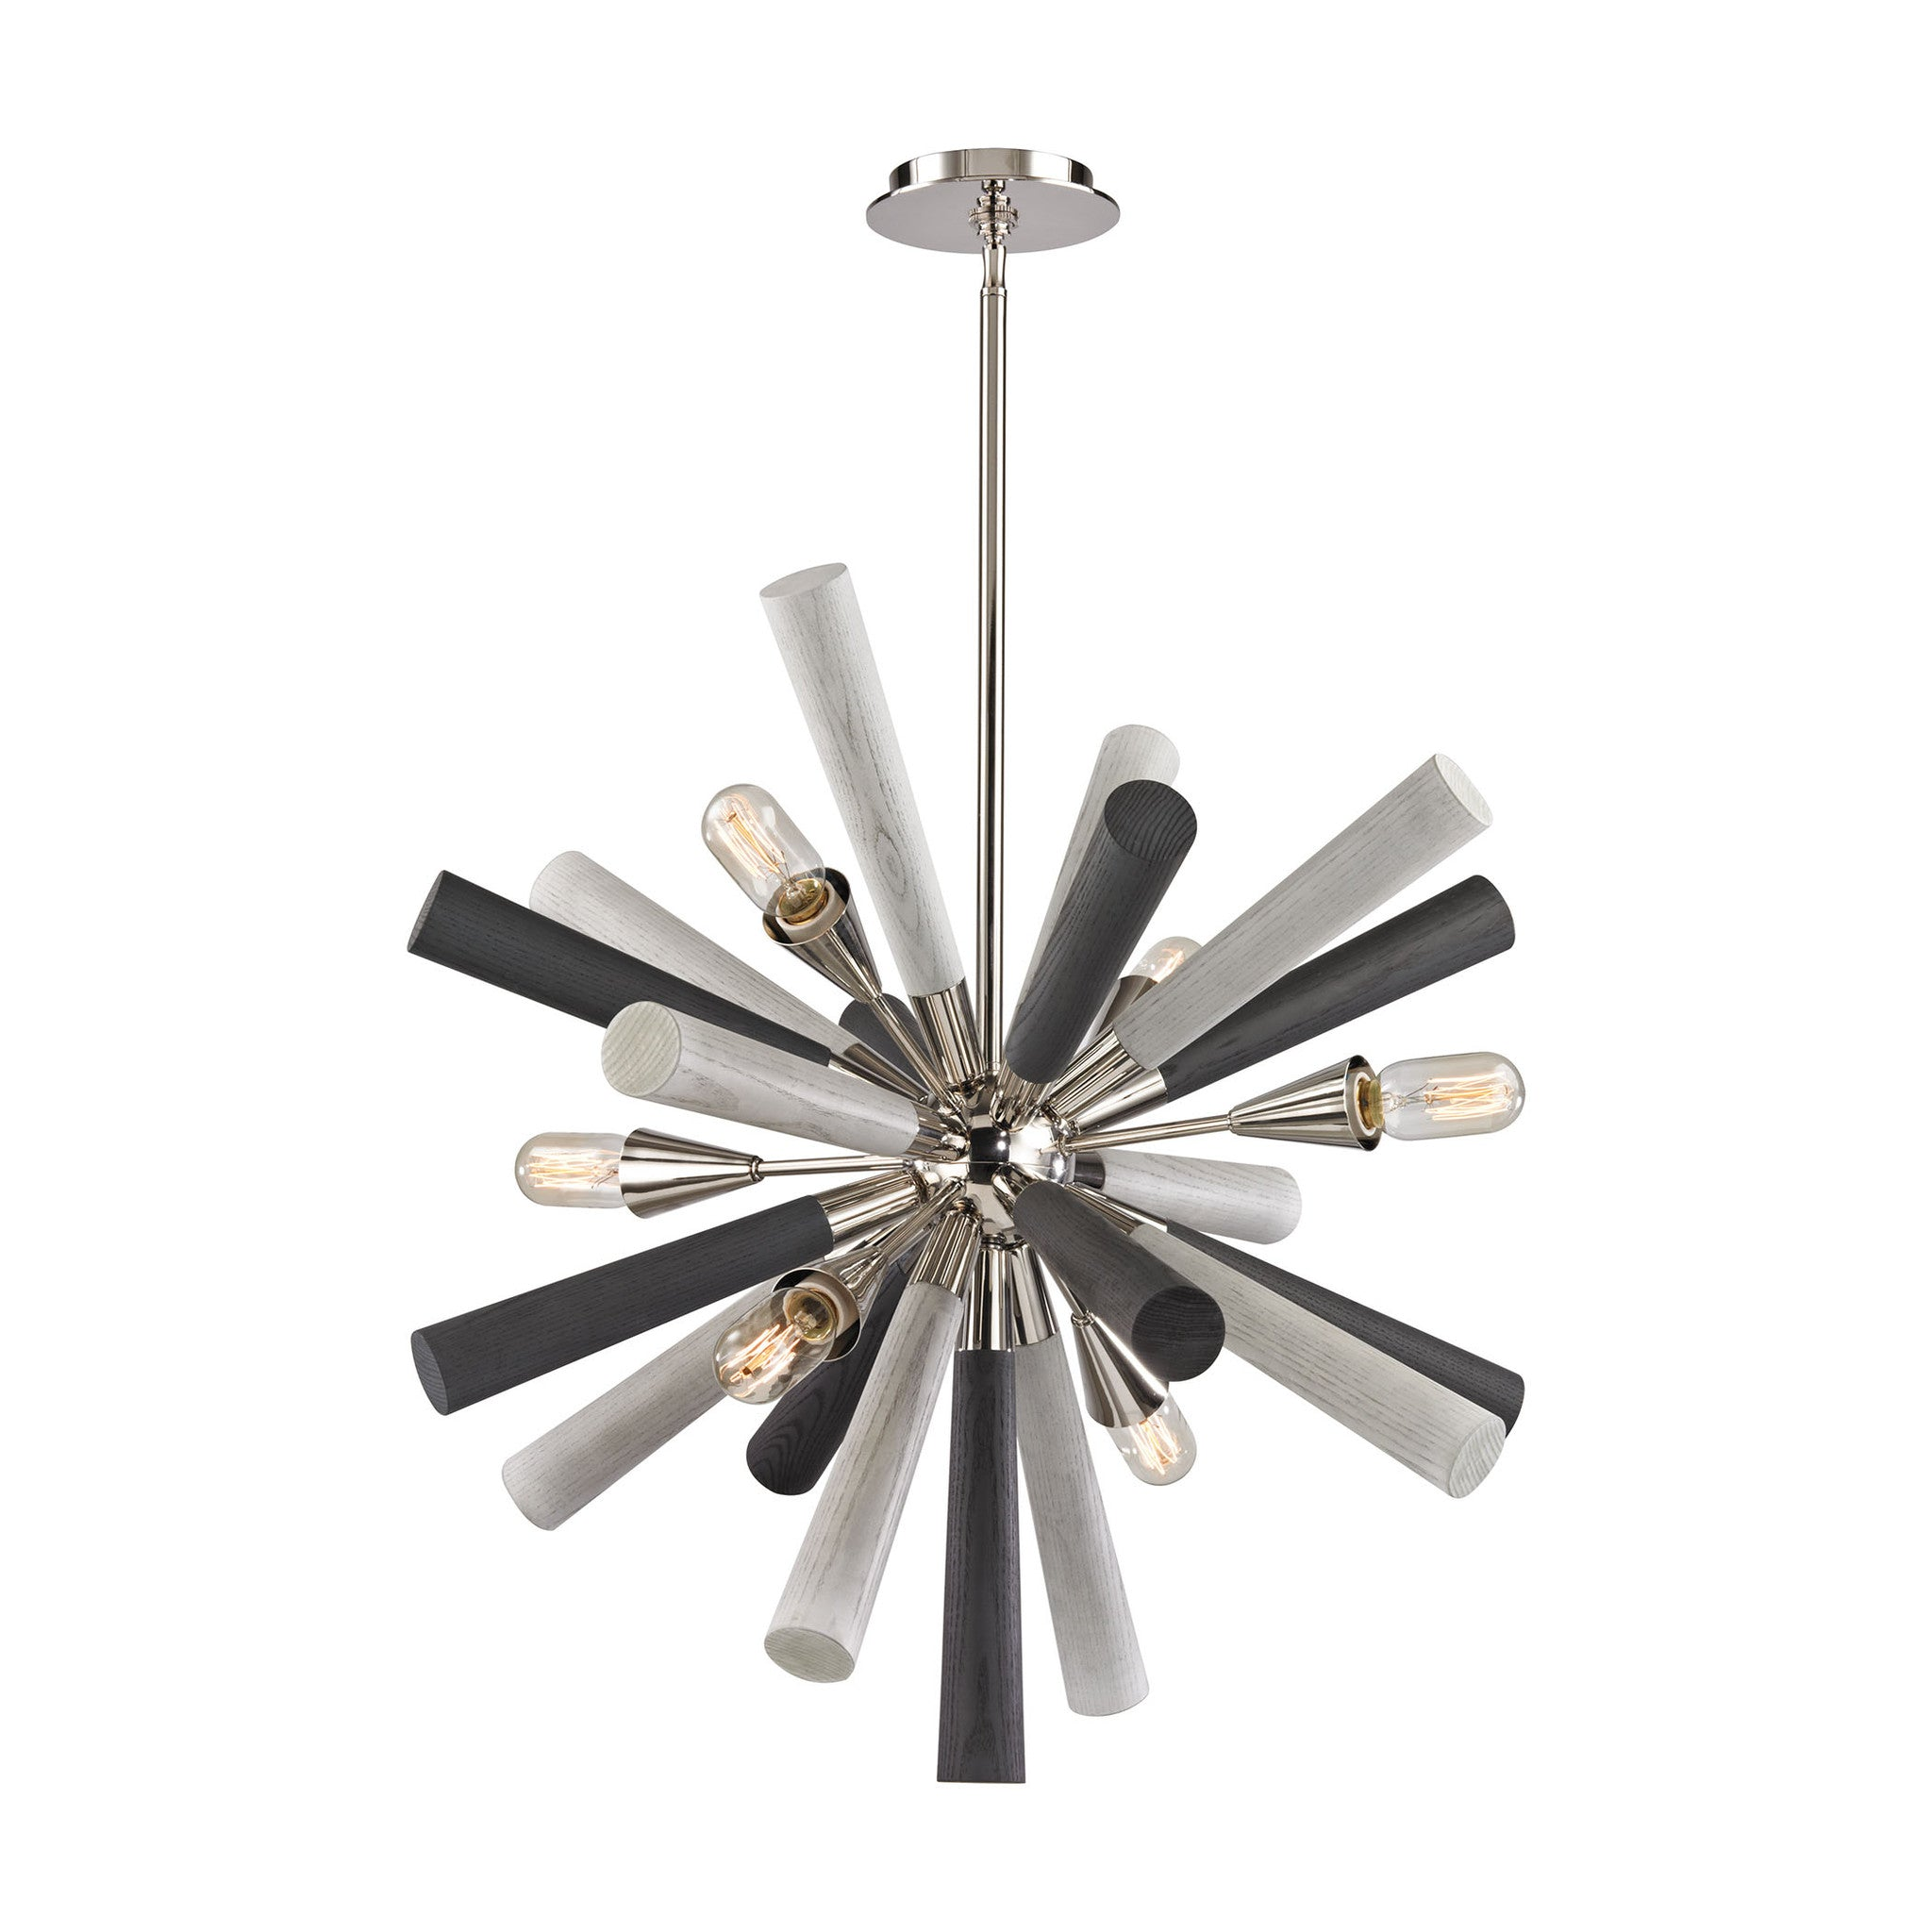 6 Light Solara Chandelier in Polished Nickel and Light-Dark Gray Washed Wood by Elk Lighting 32231/6